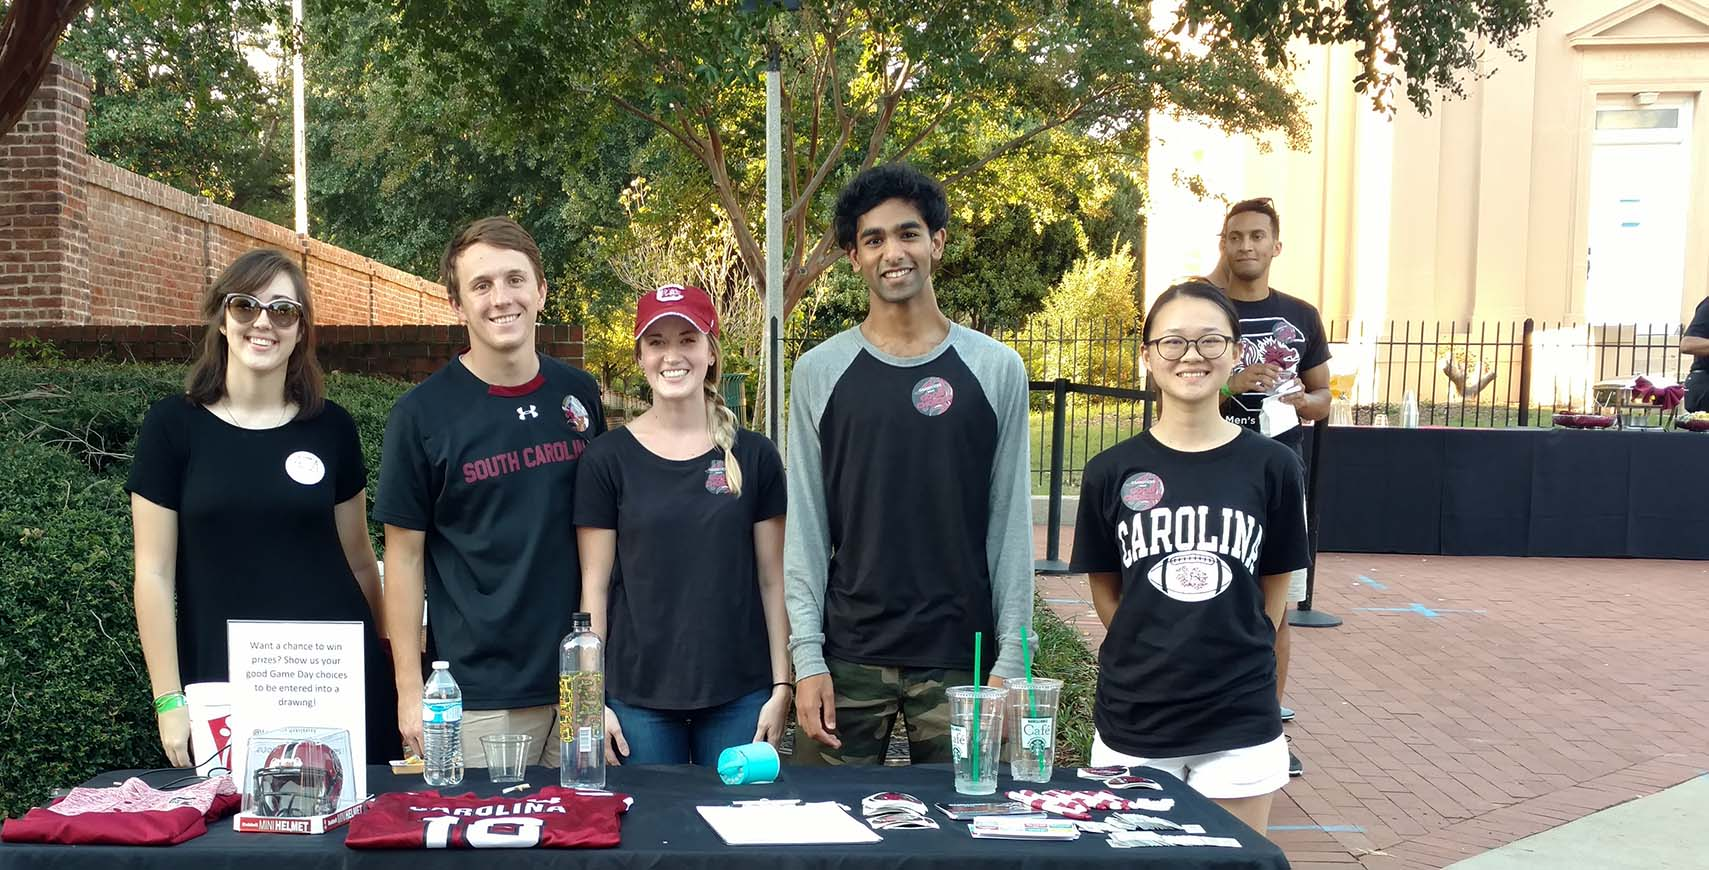 USC students stand behind a merchandise table on Greene Street, smiling